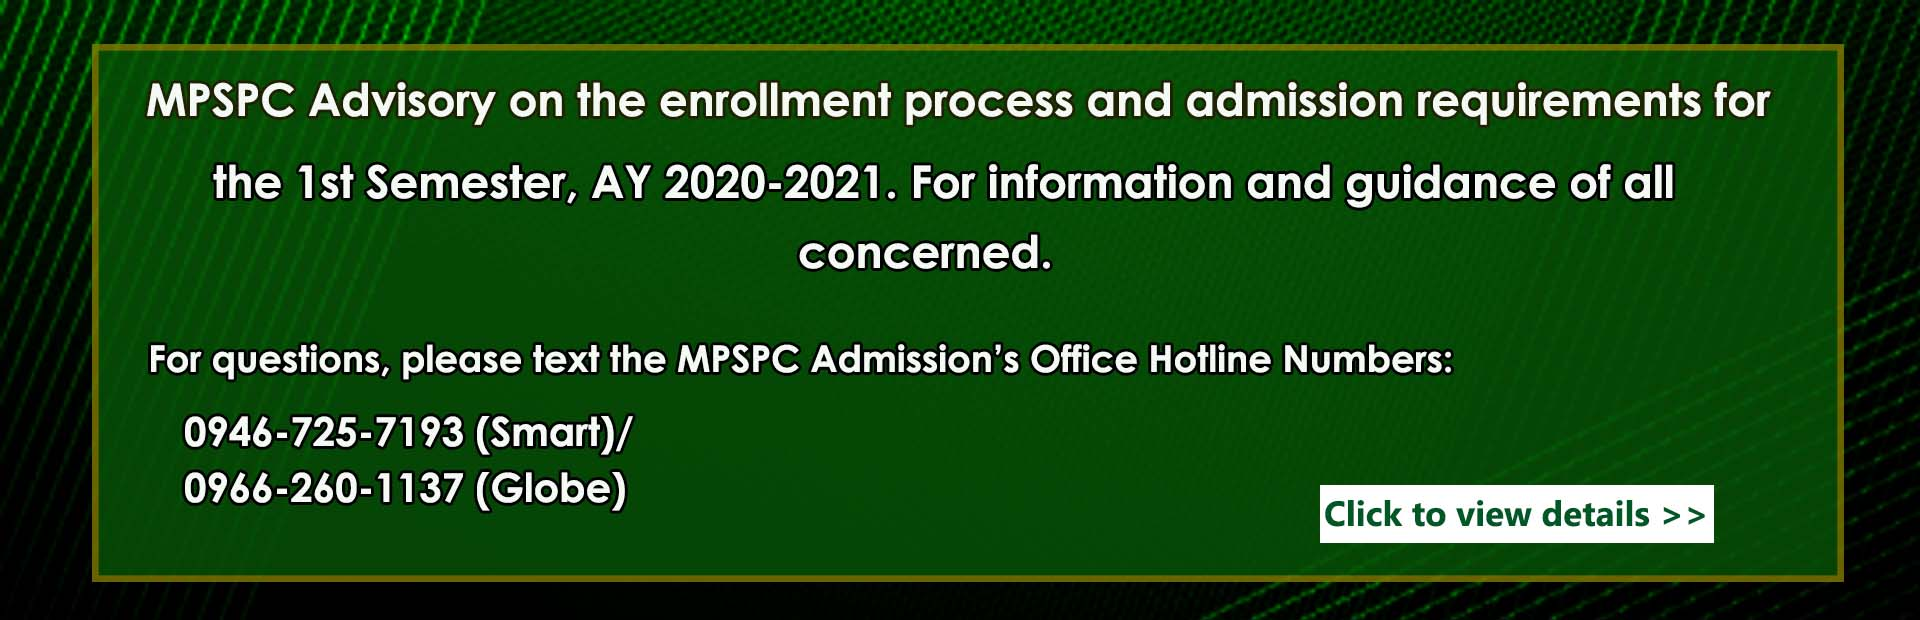 MPSPC Advisory on the enrollment process and admission requirements